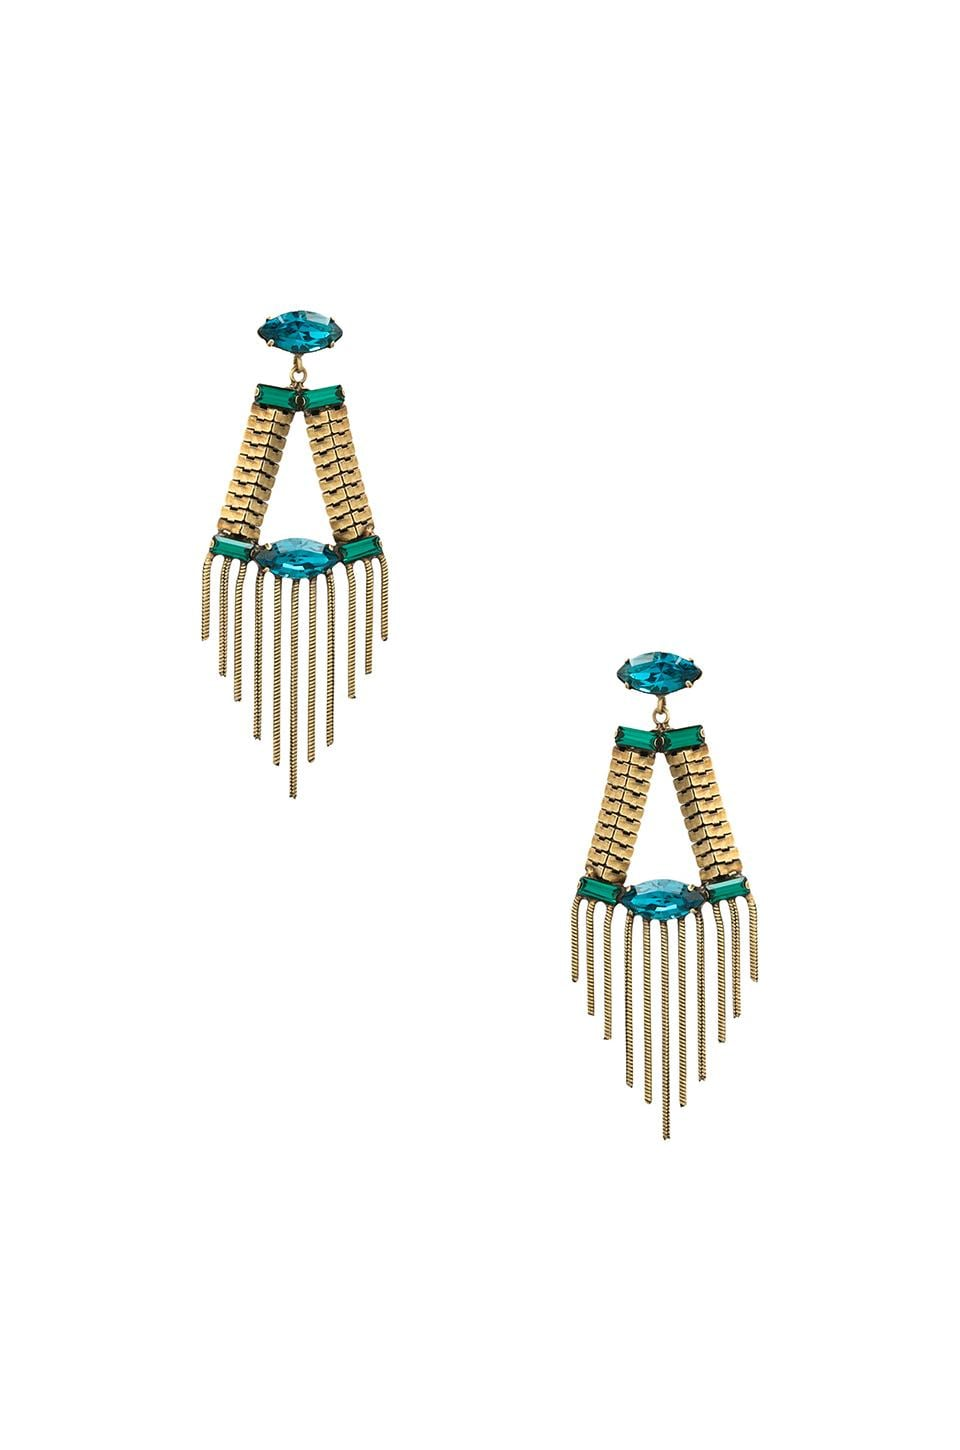 Lionette by Noa Sade Greenwich Earrings in Blue